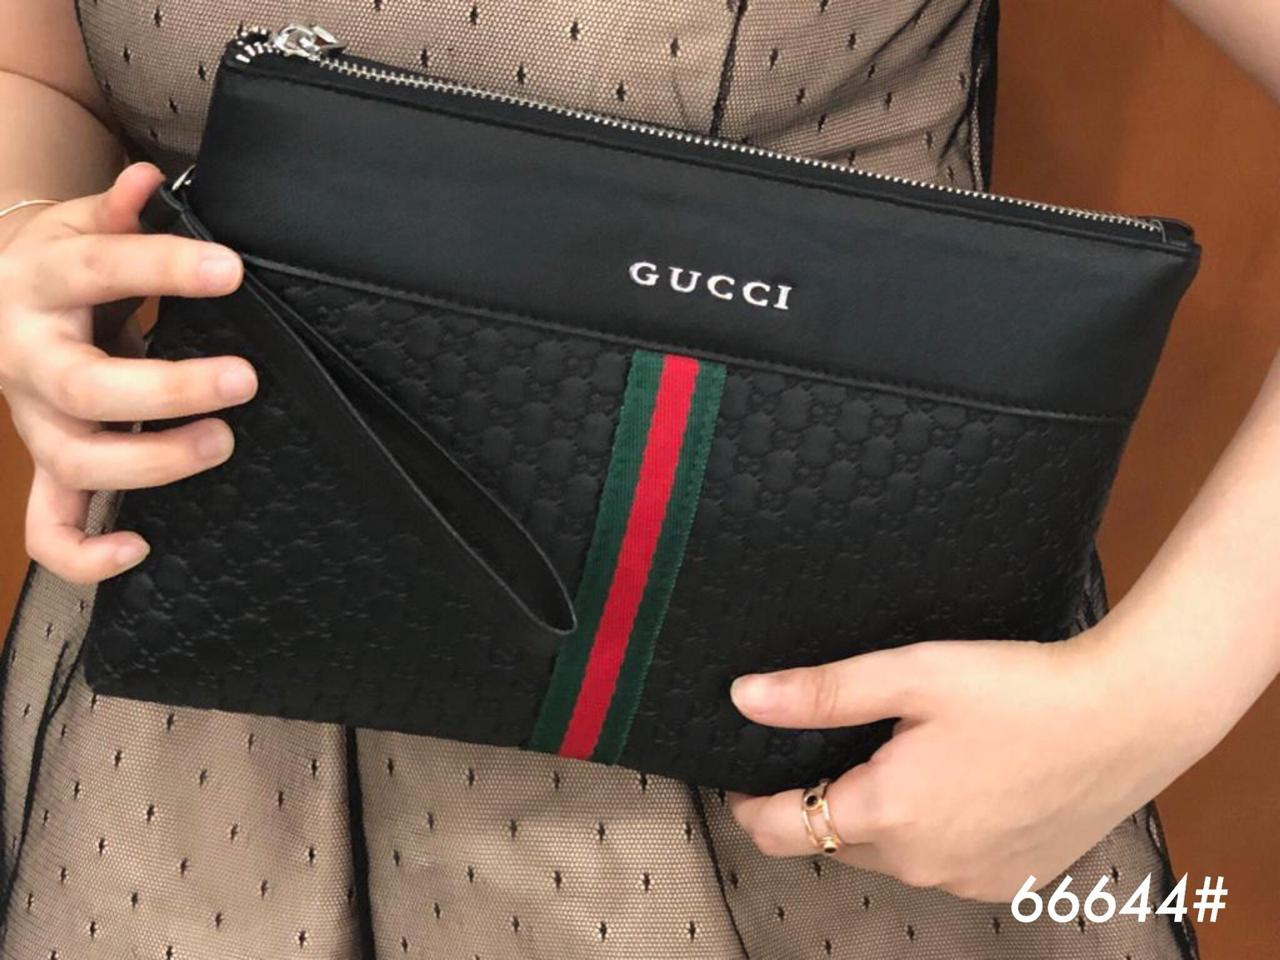 Clutch Gucci  66640  66641  66642  66643  66644 5ce328b75d